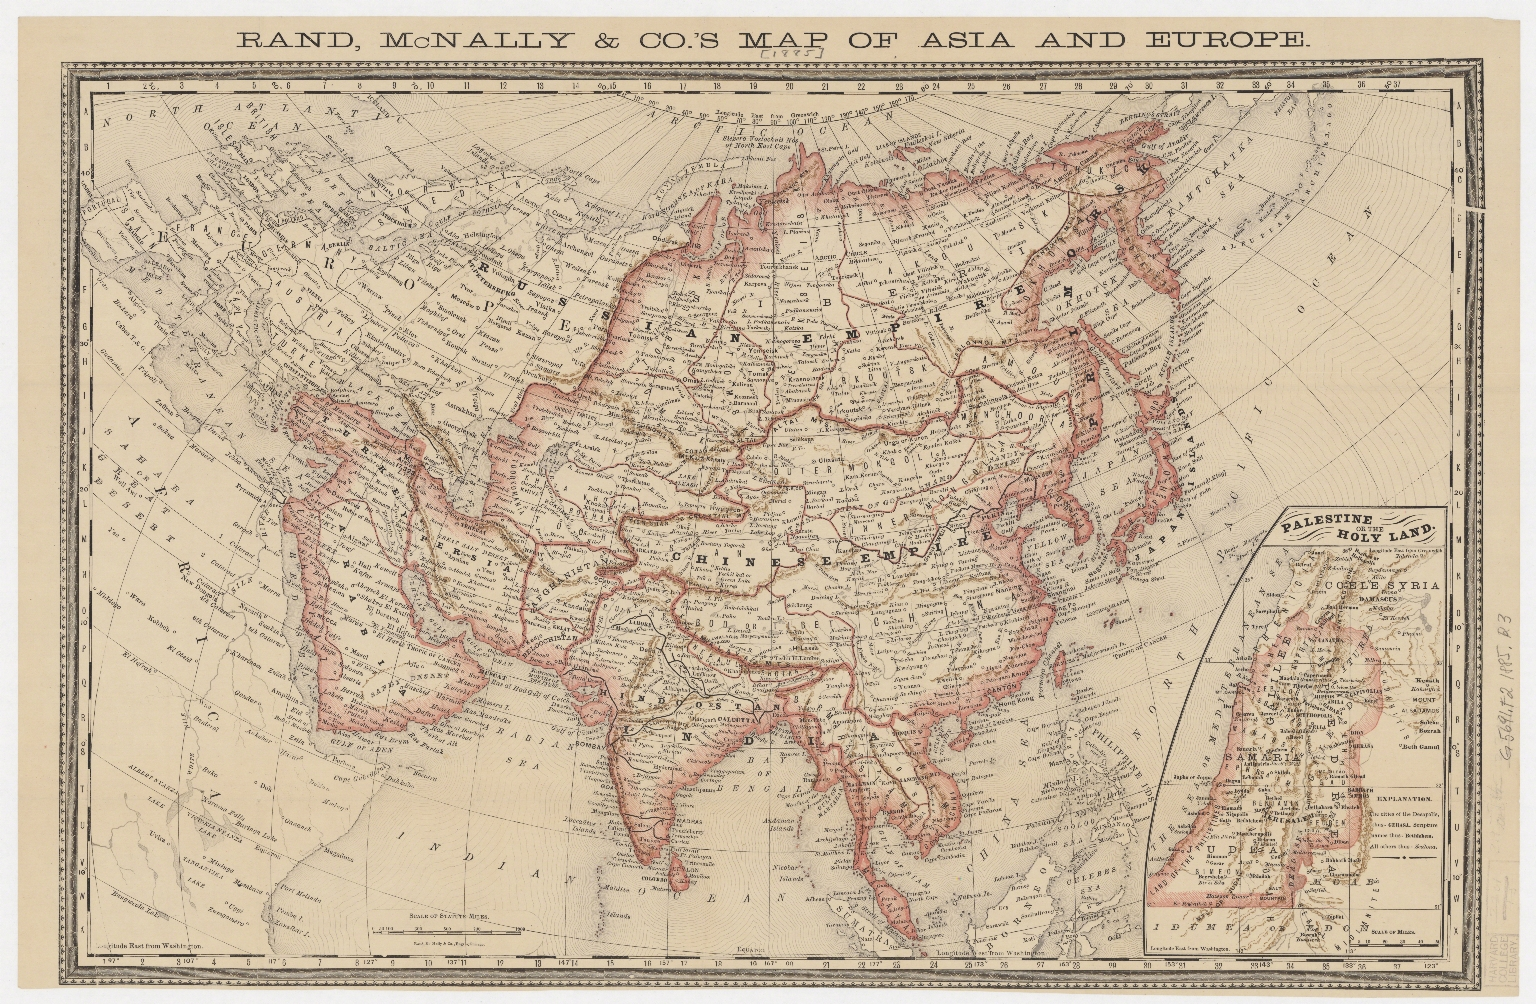 Rand McNally & Co.'s map of Asia and Europe